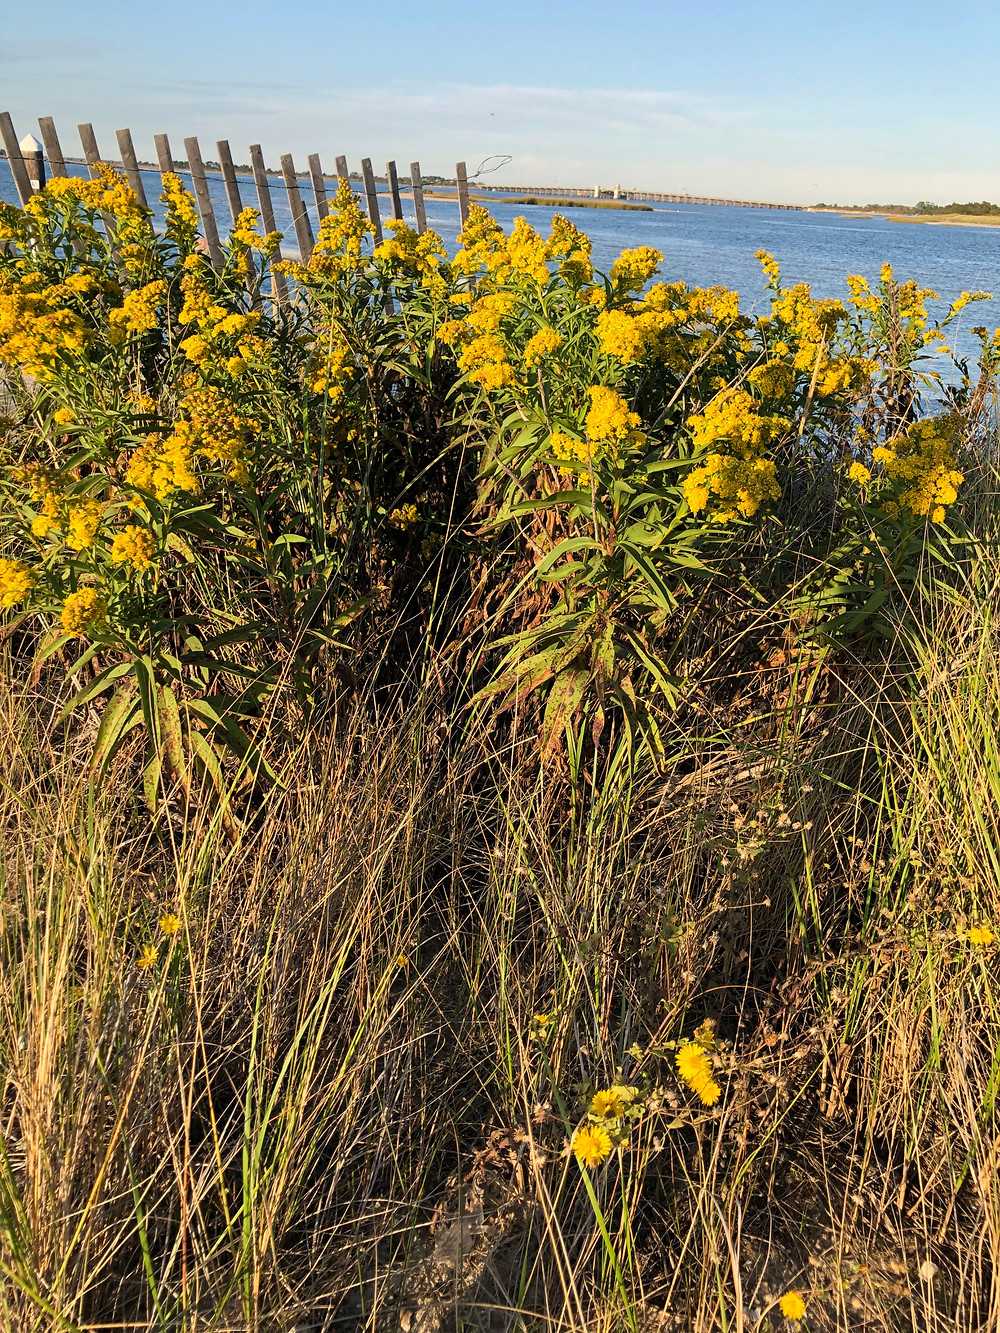 Solidago and Ammophilia at West End Beach